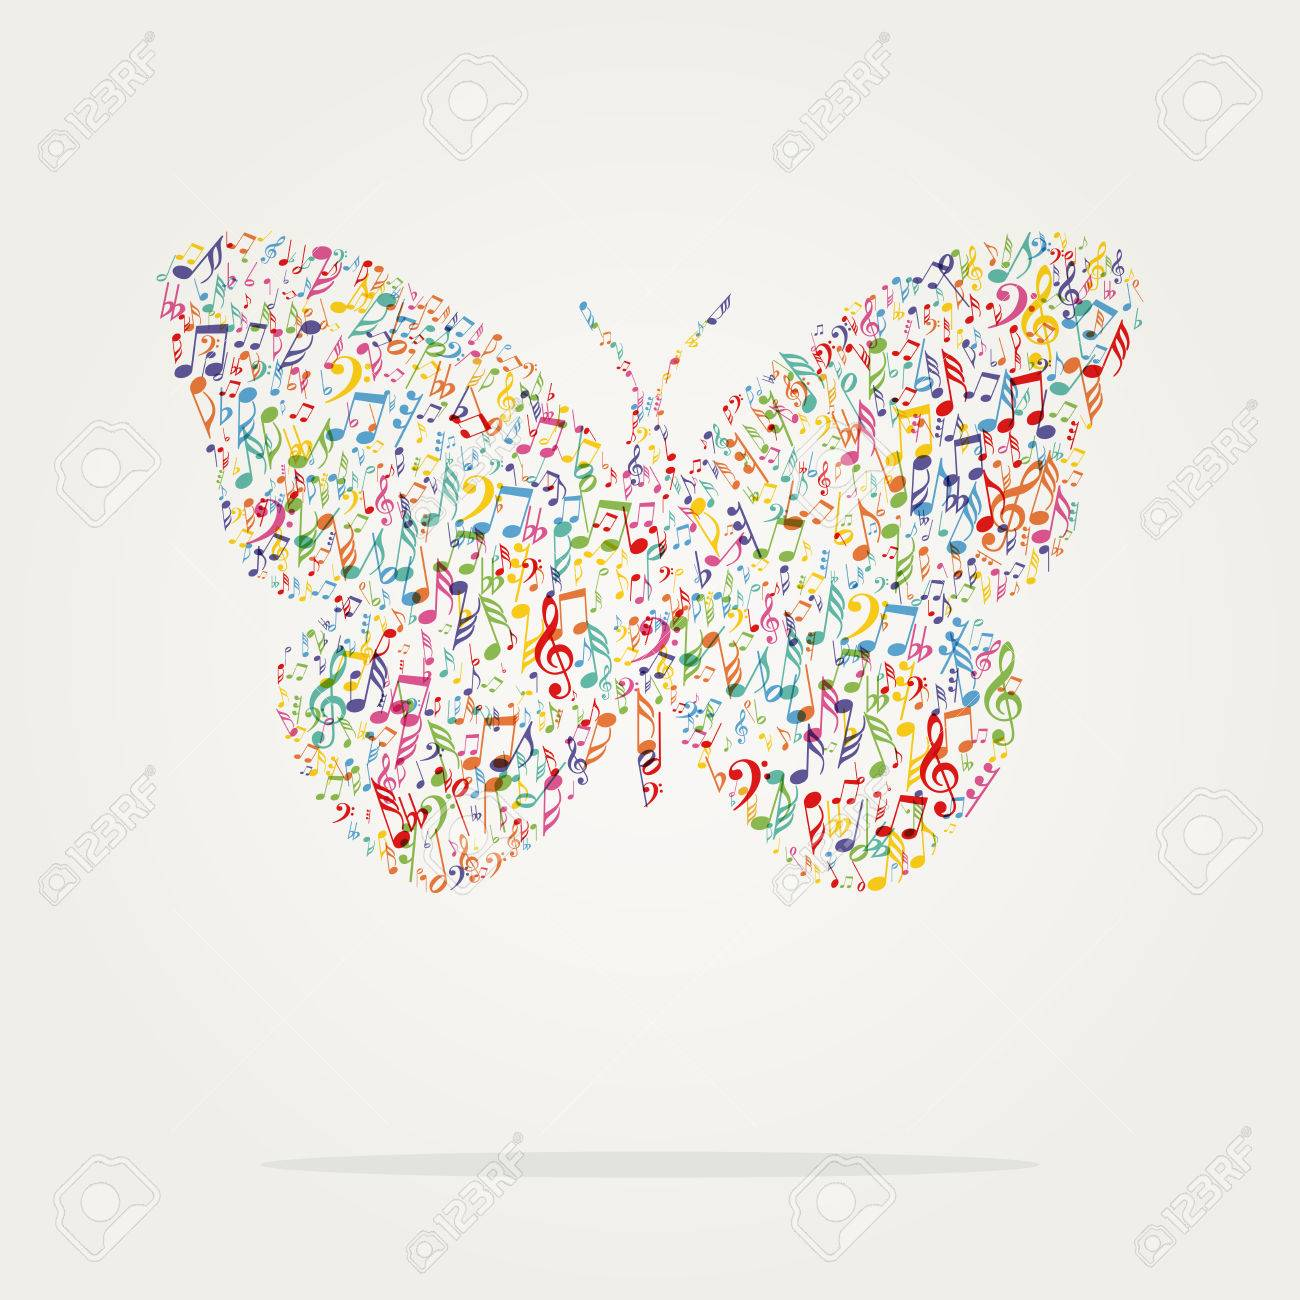 butterfly shape music color with notes - 57417859